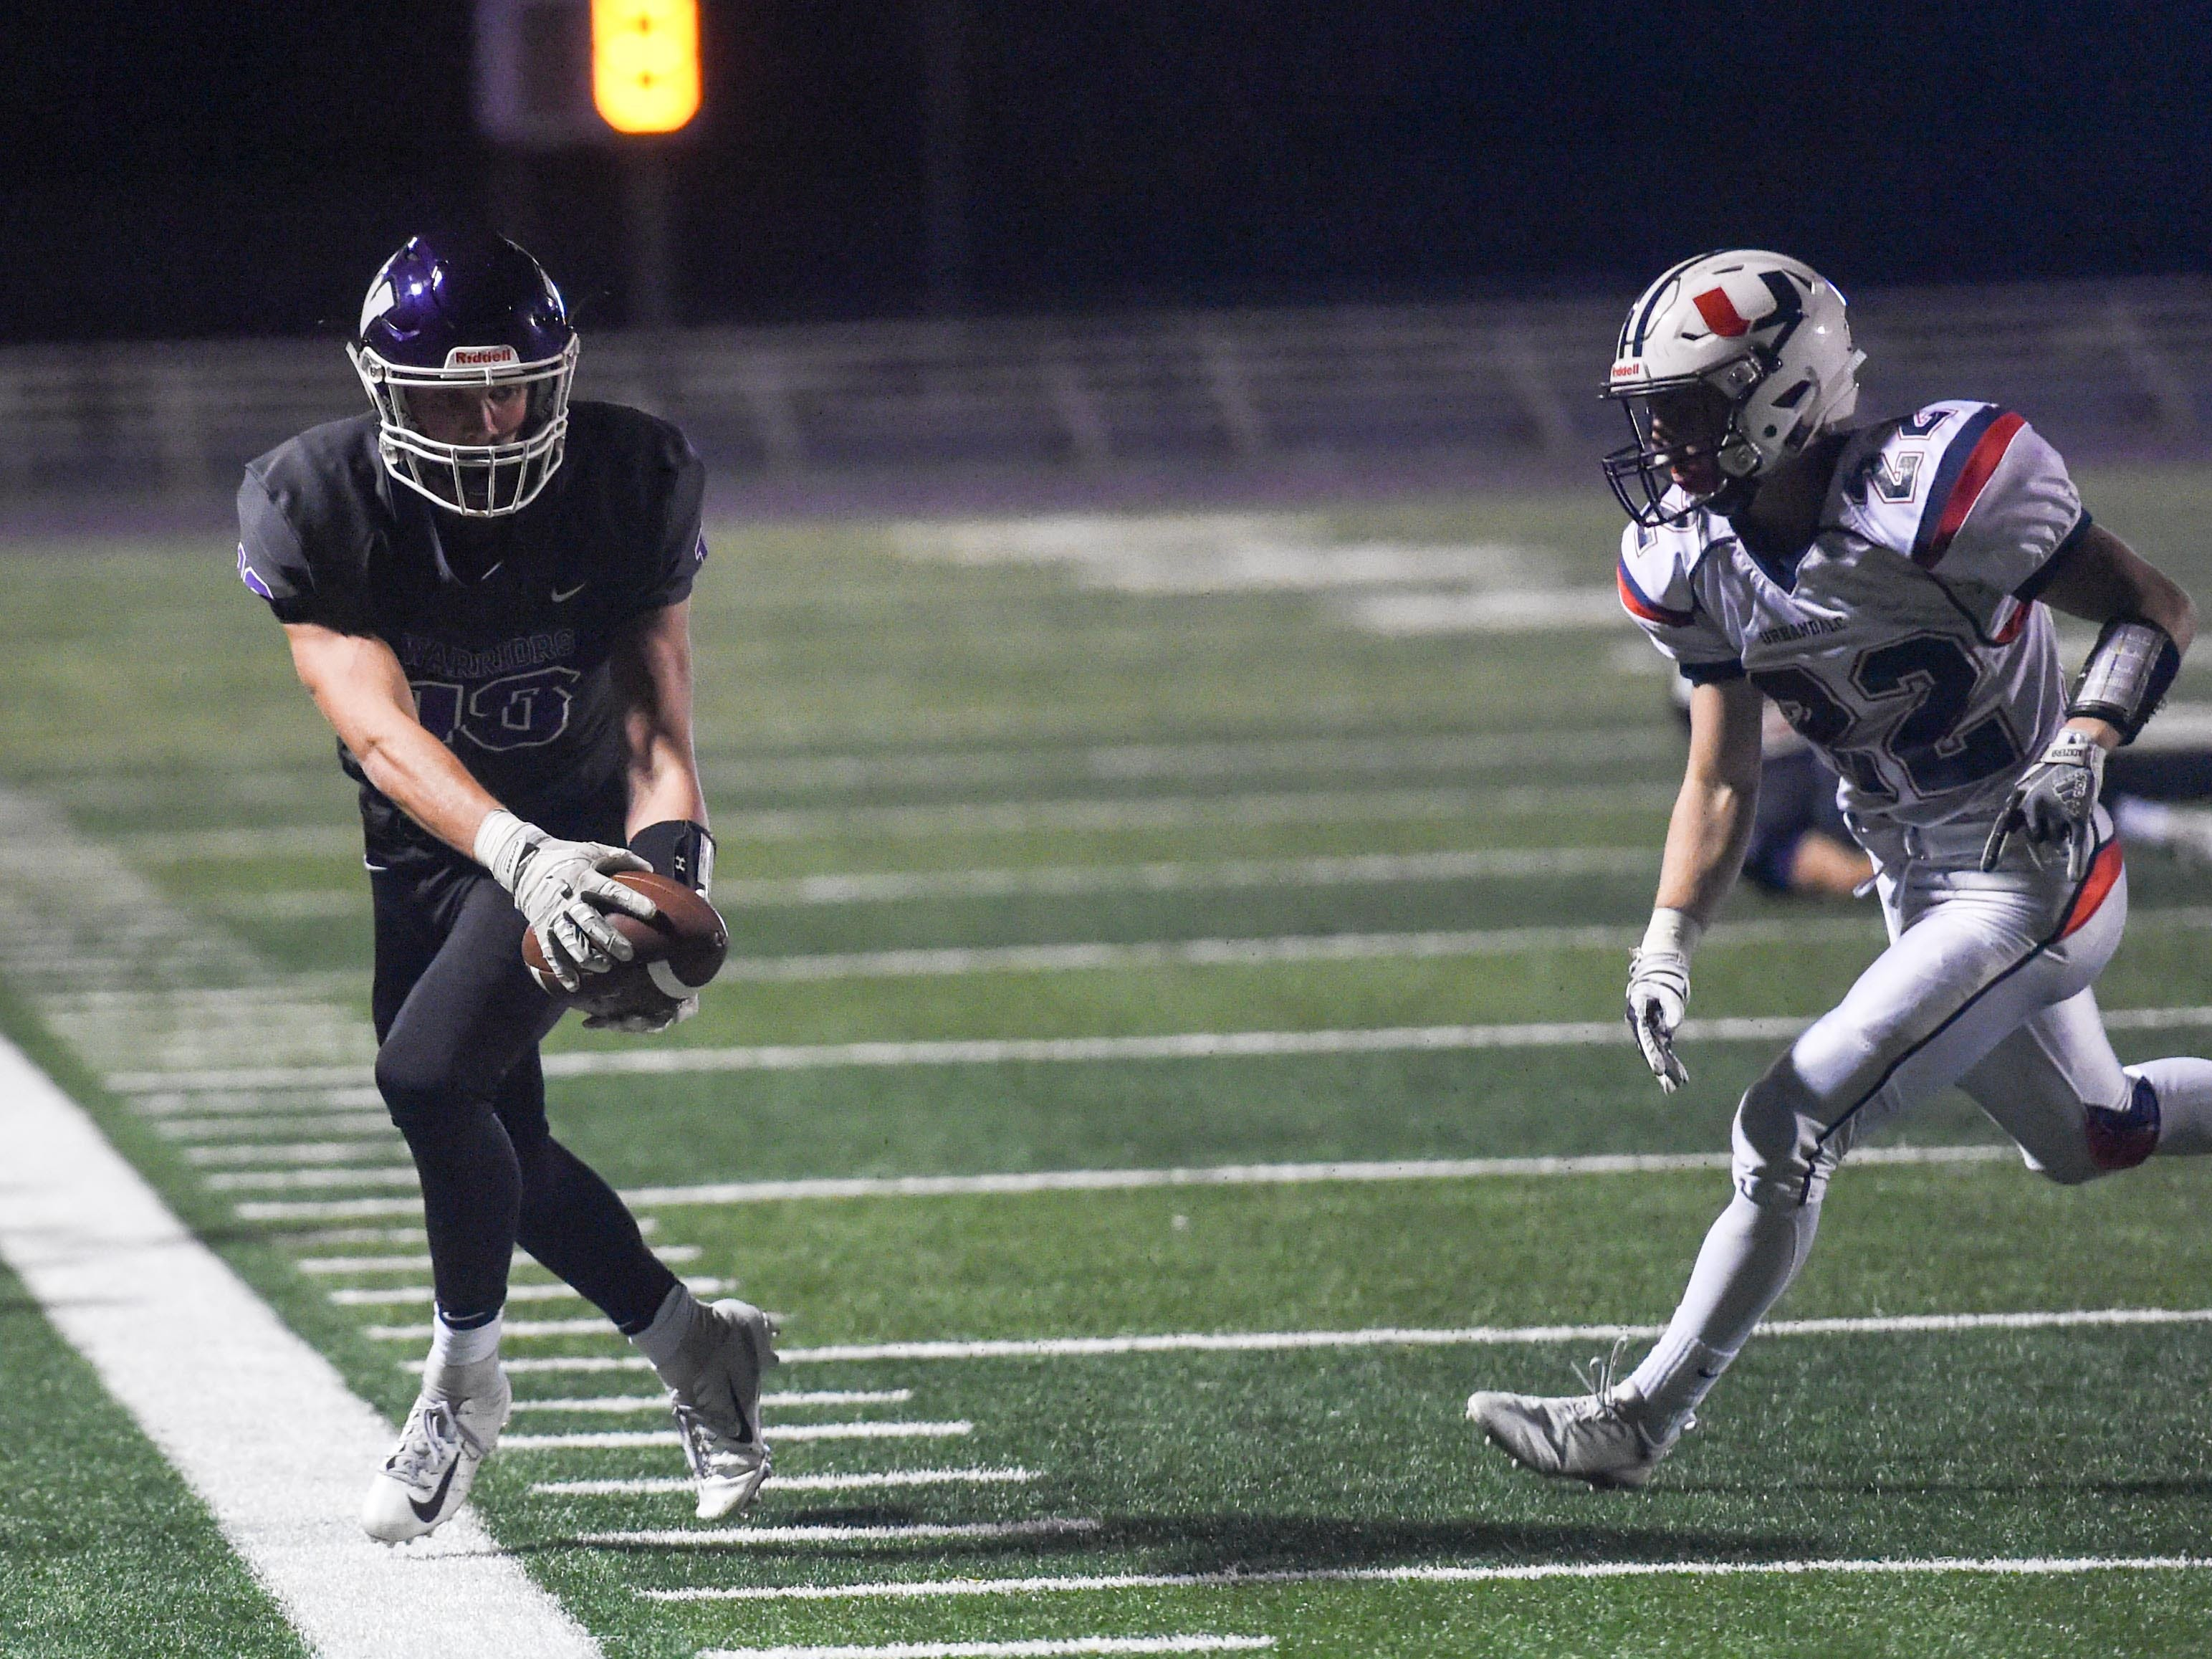 Urbandale's Brook Heinen (22) trails Waukee's Zach Eaton (18) as he makes a catch near the sideline on Friday, Oct. 26, 2018 during a playoff game between the Waukee Warriors and the Urbandale J-Hawks at Waukee High School.